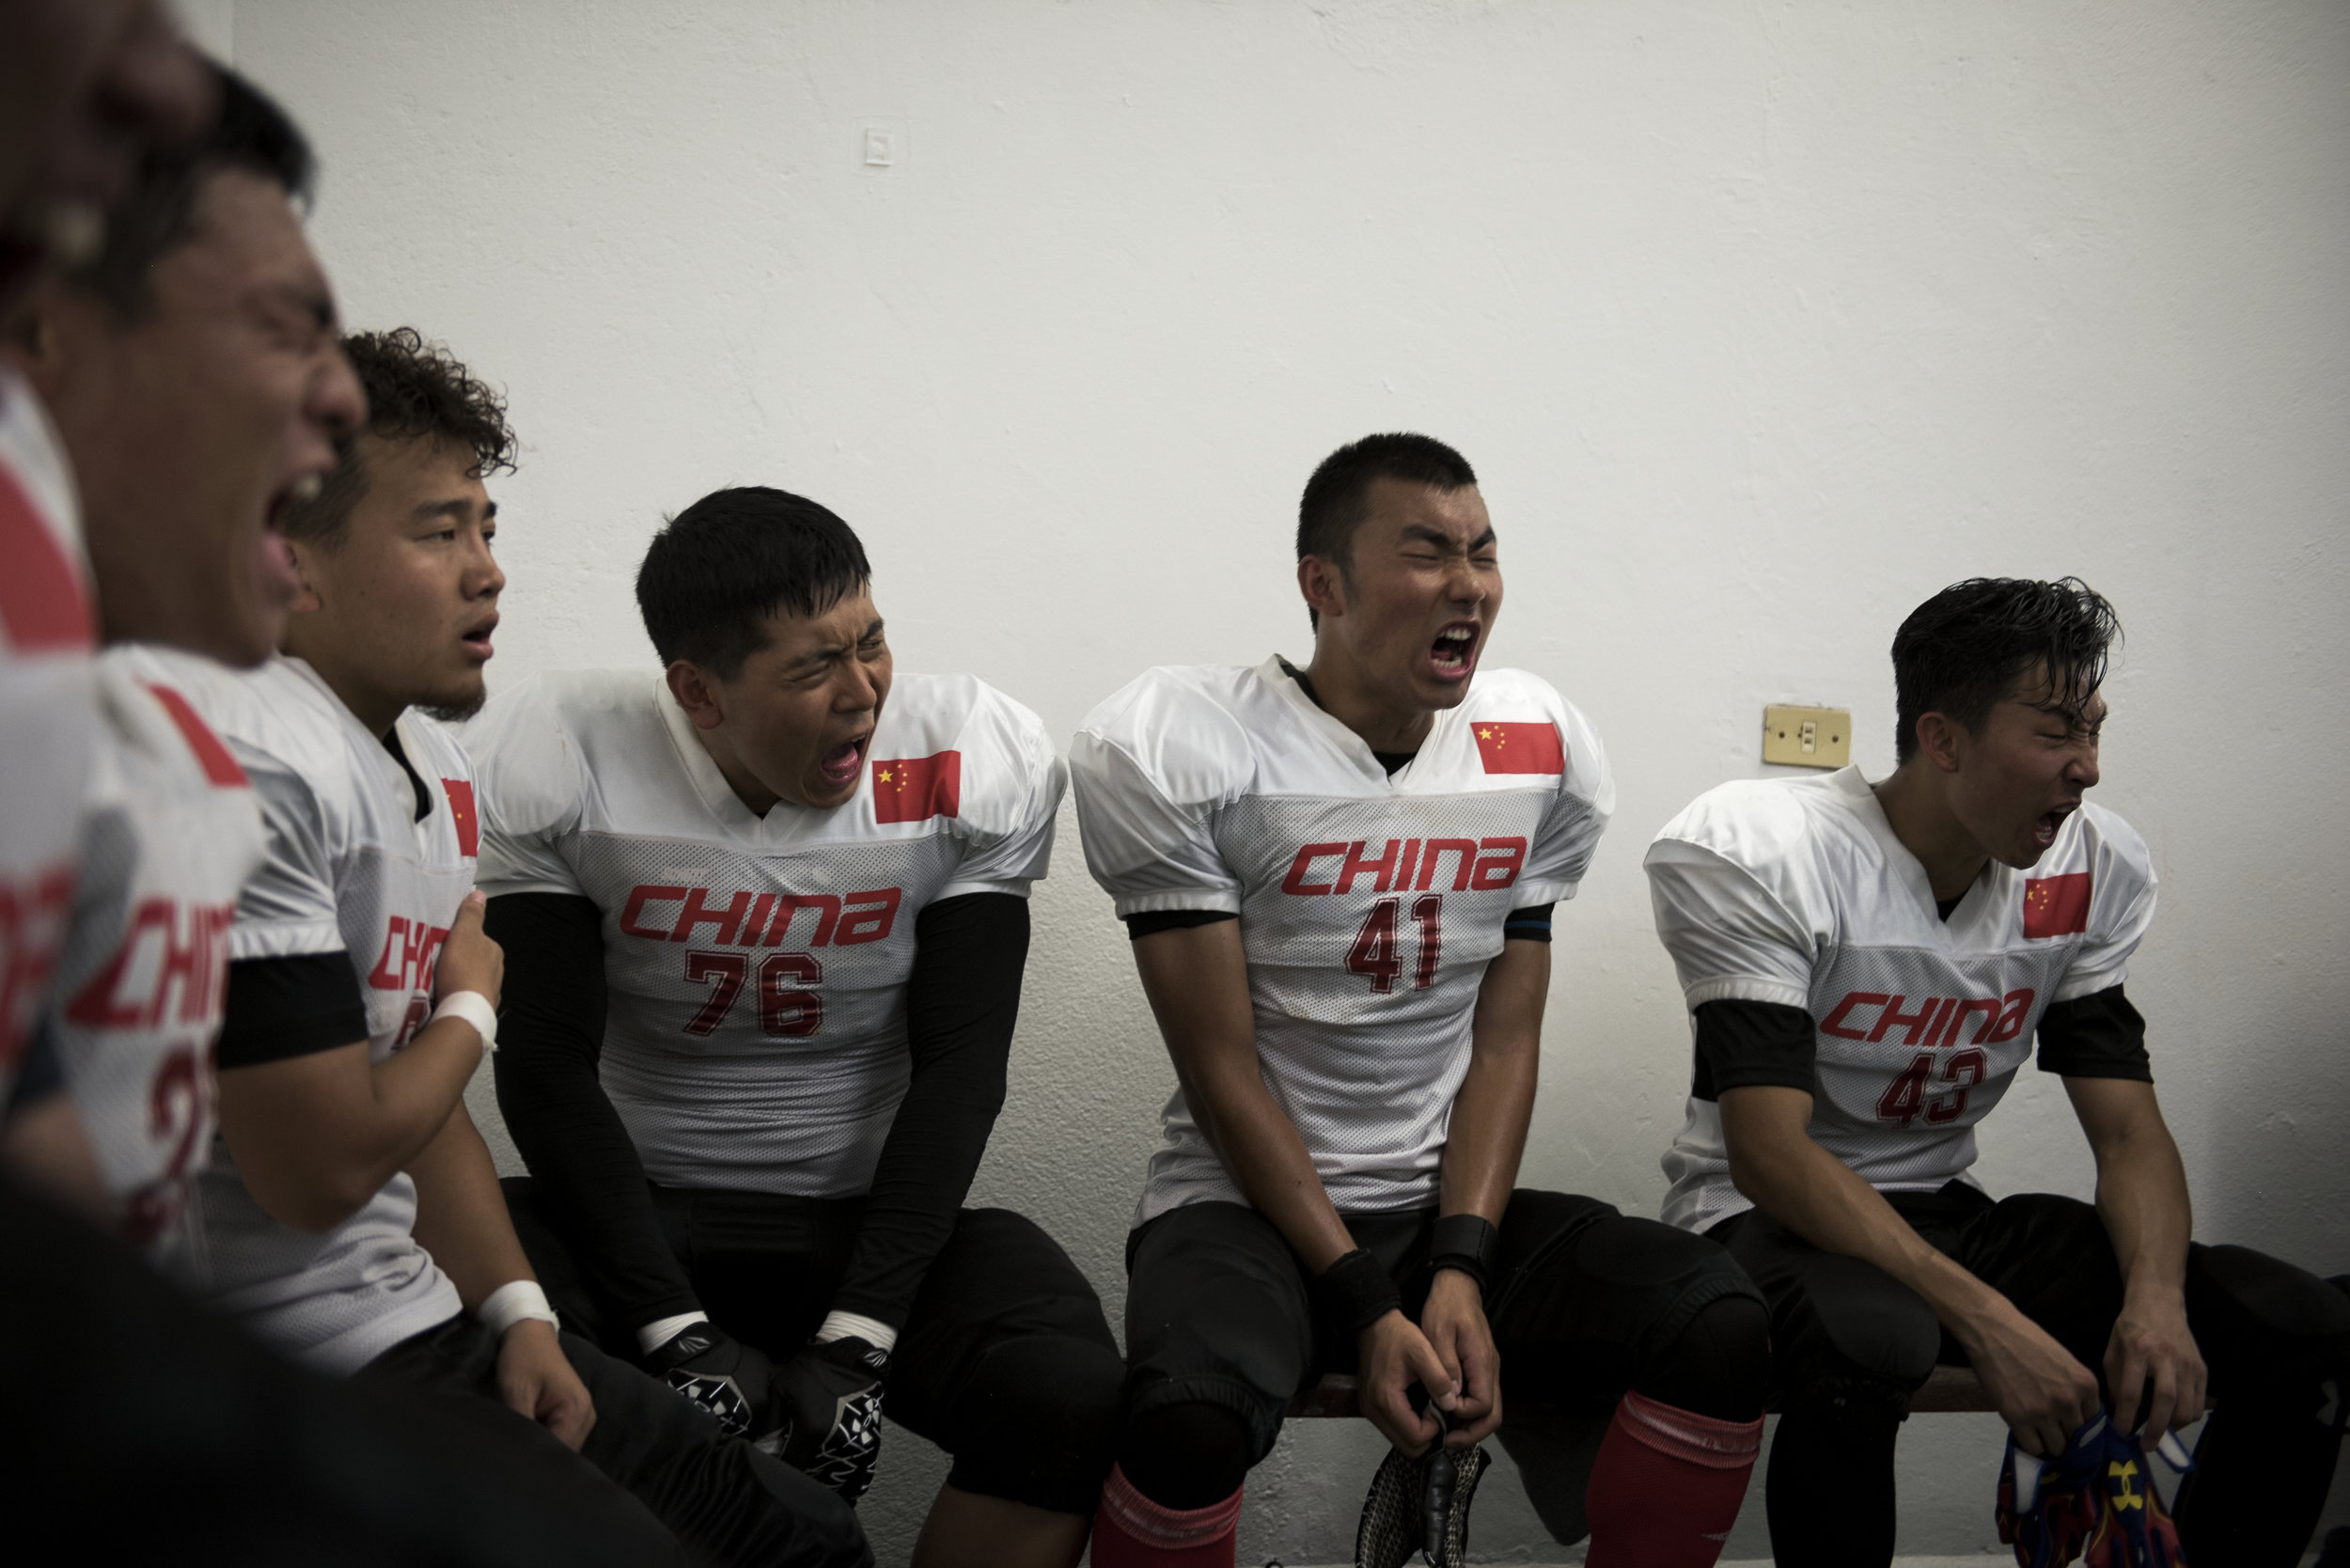 Chinese players react to their coach's motivation during halftime of their final game of the 2016 American Football World University Championship against Japan on June 10, 2016 in Monterrey, Mexico.